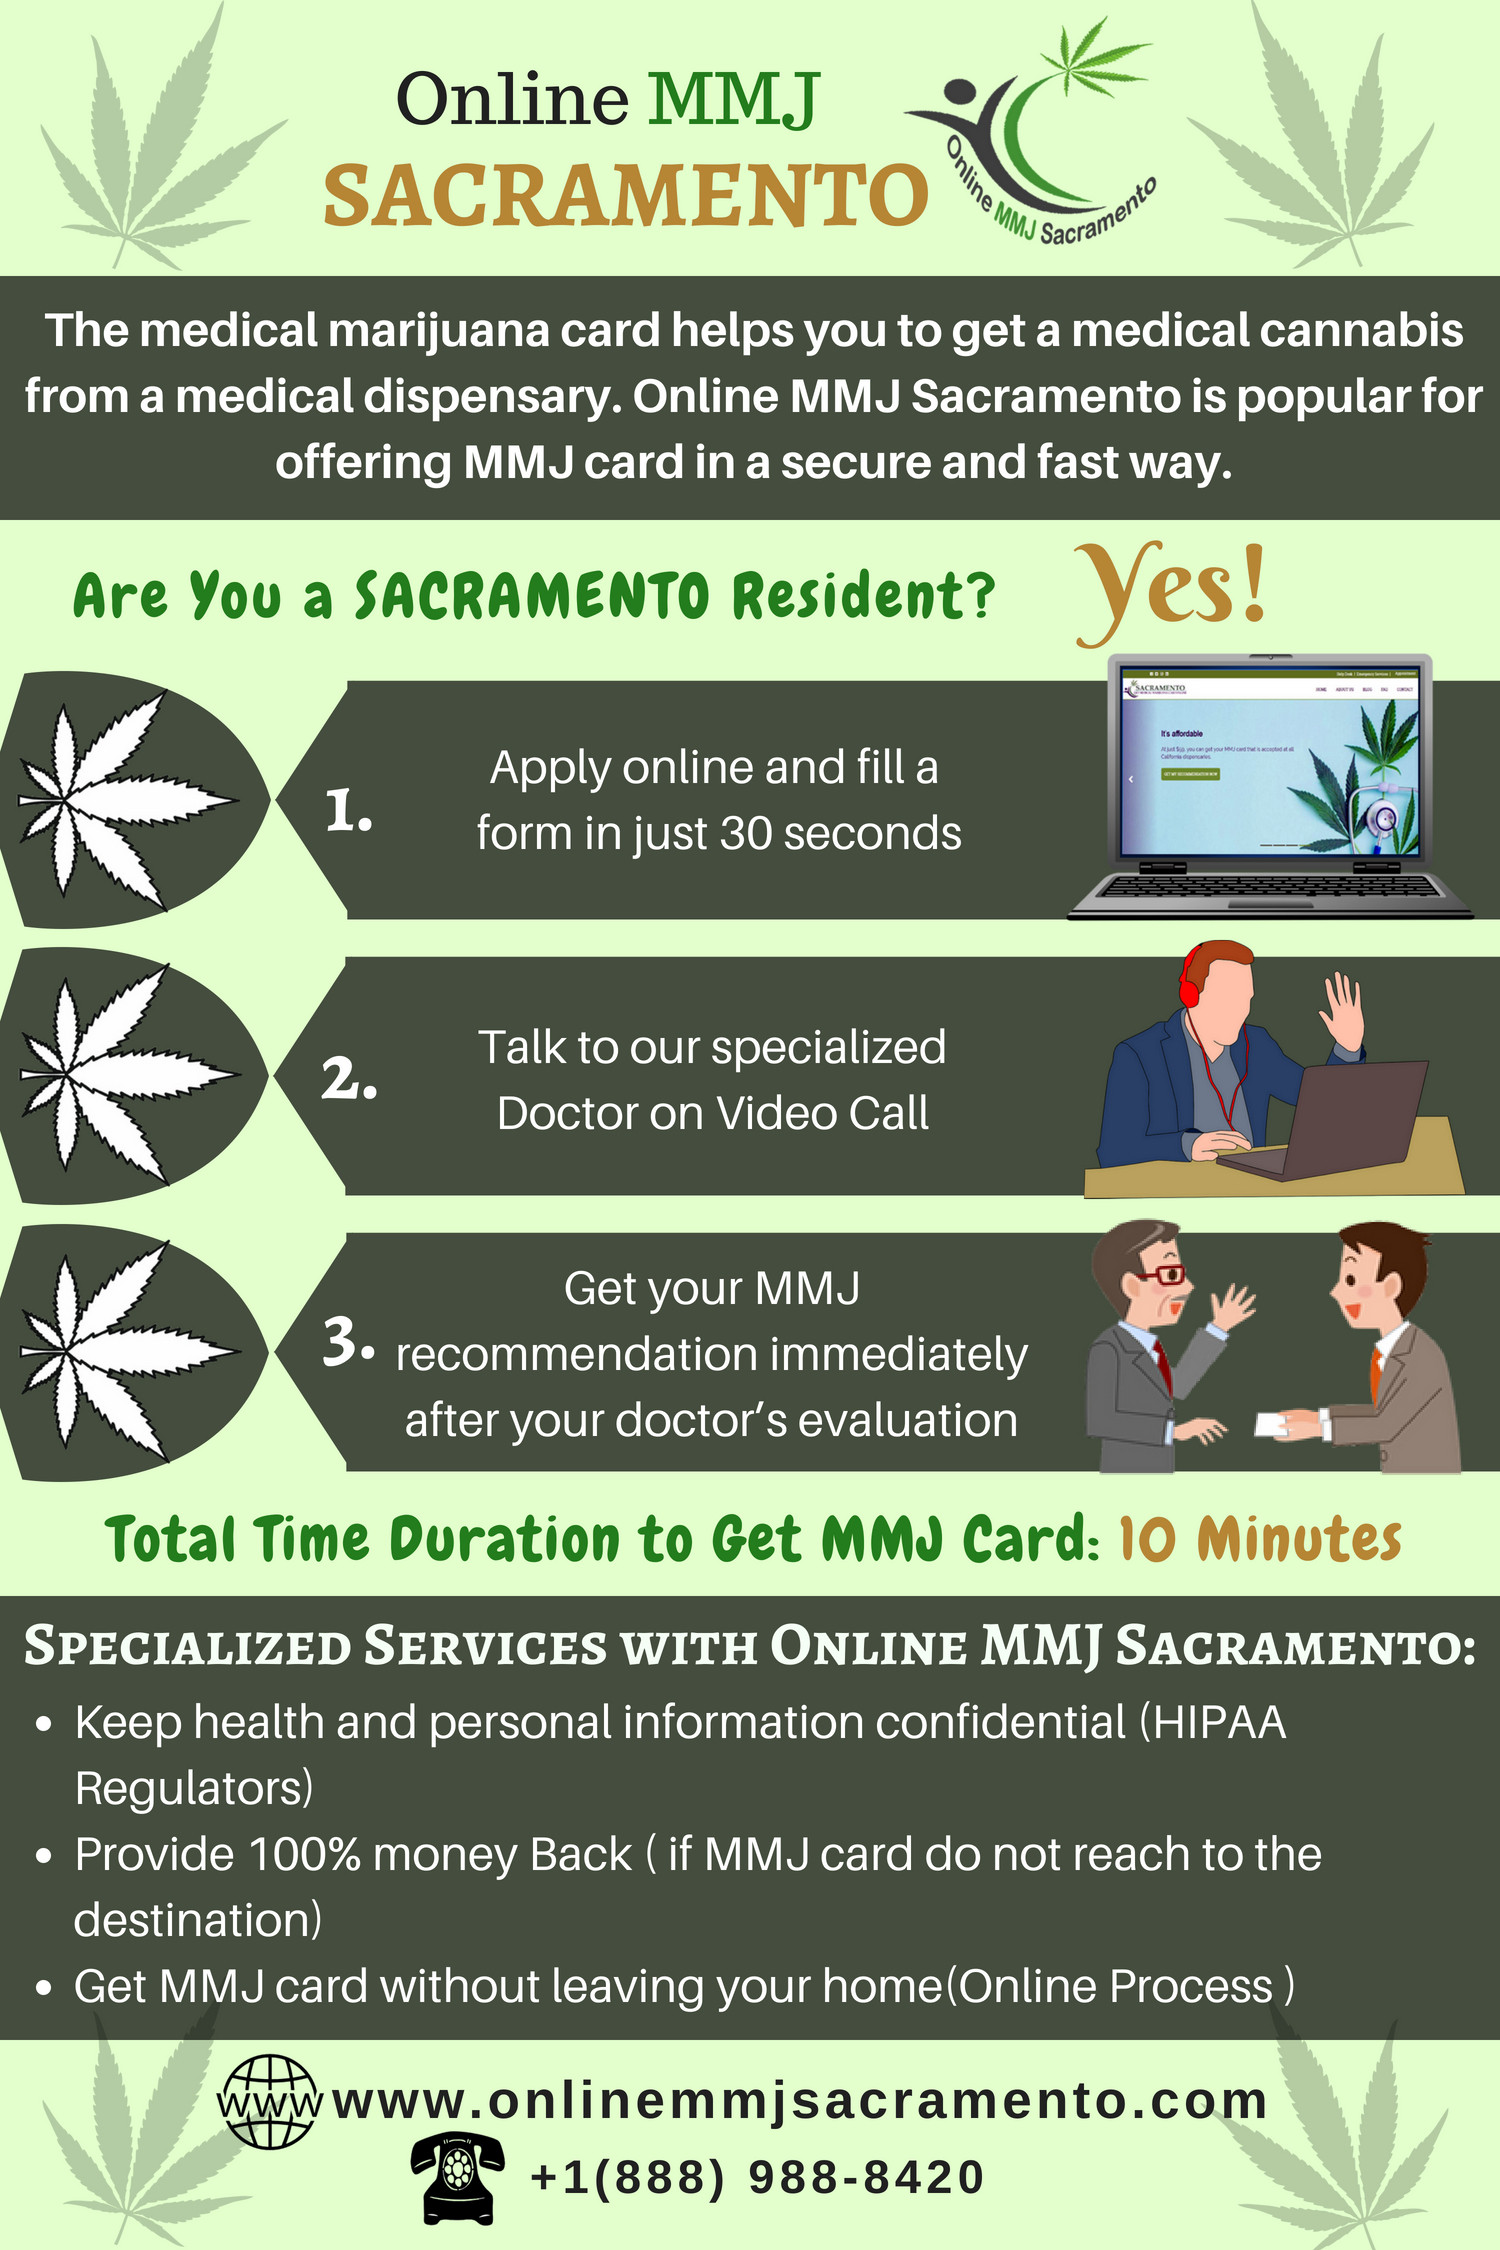 Now it is Easy To Access MMJ (Medical Marijuana) Card in Sacramento. Infographic